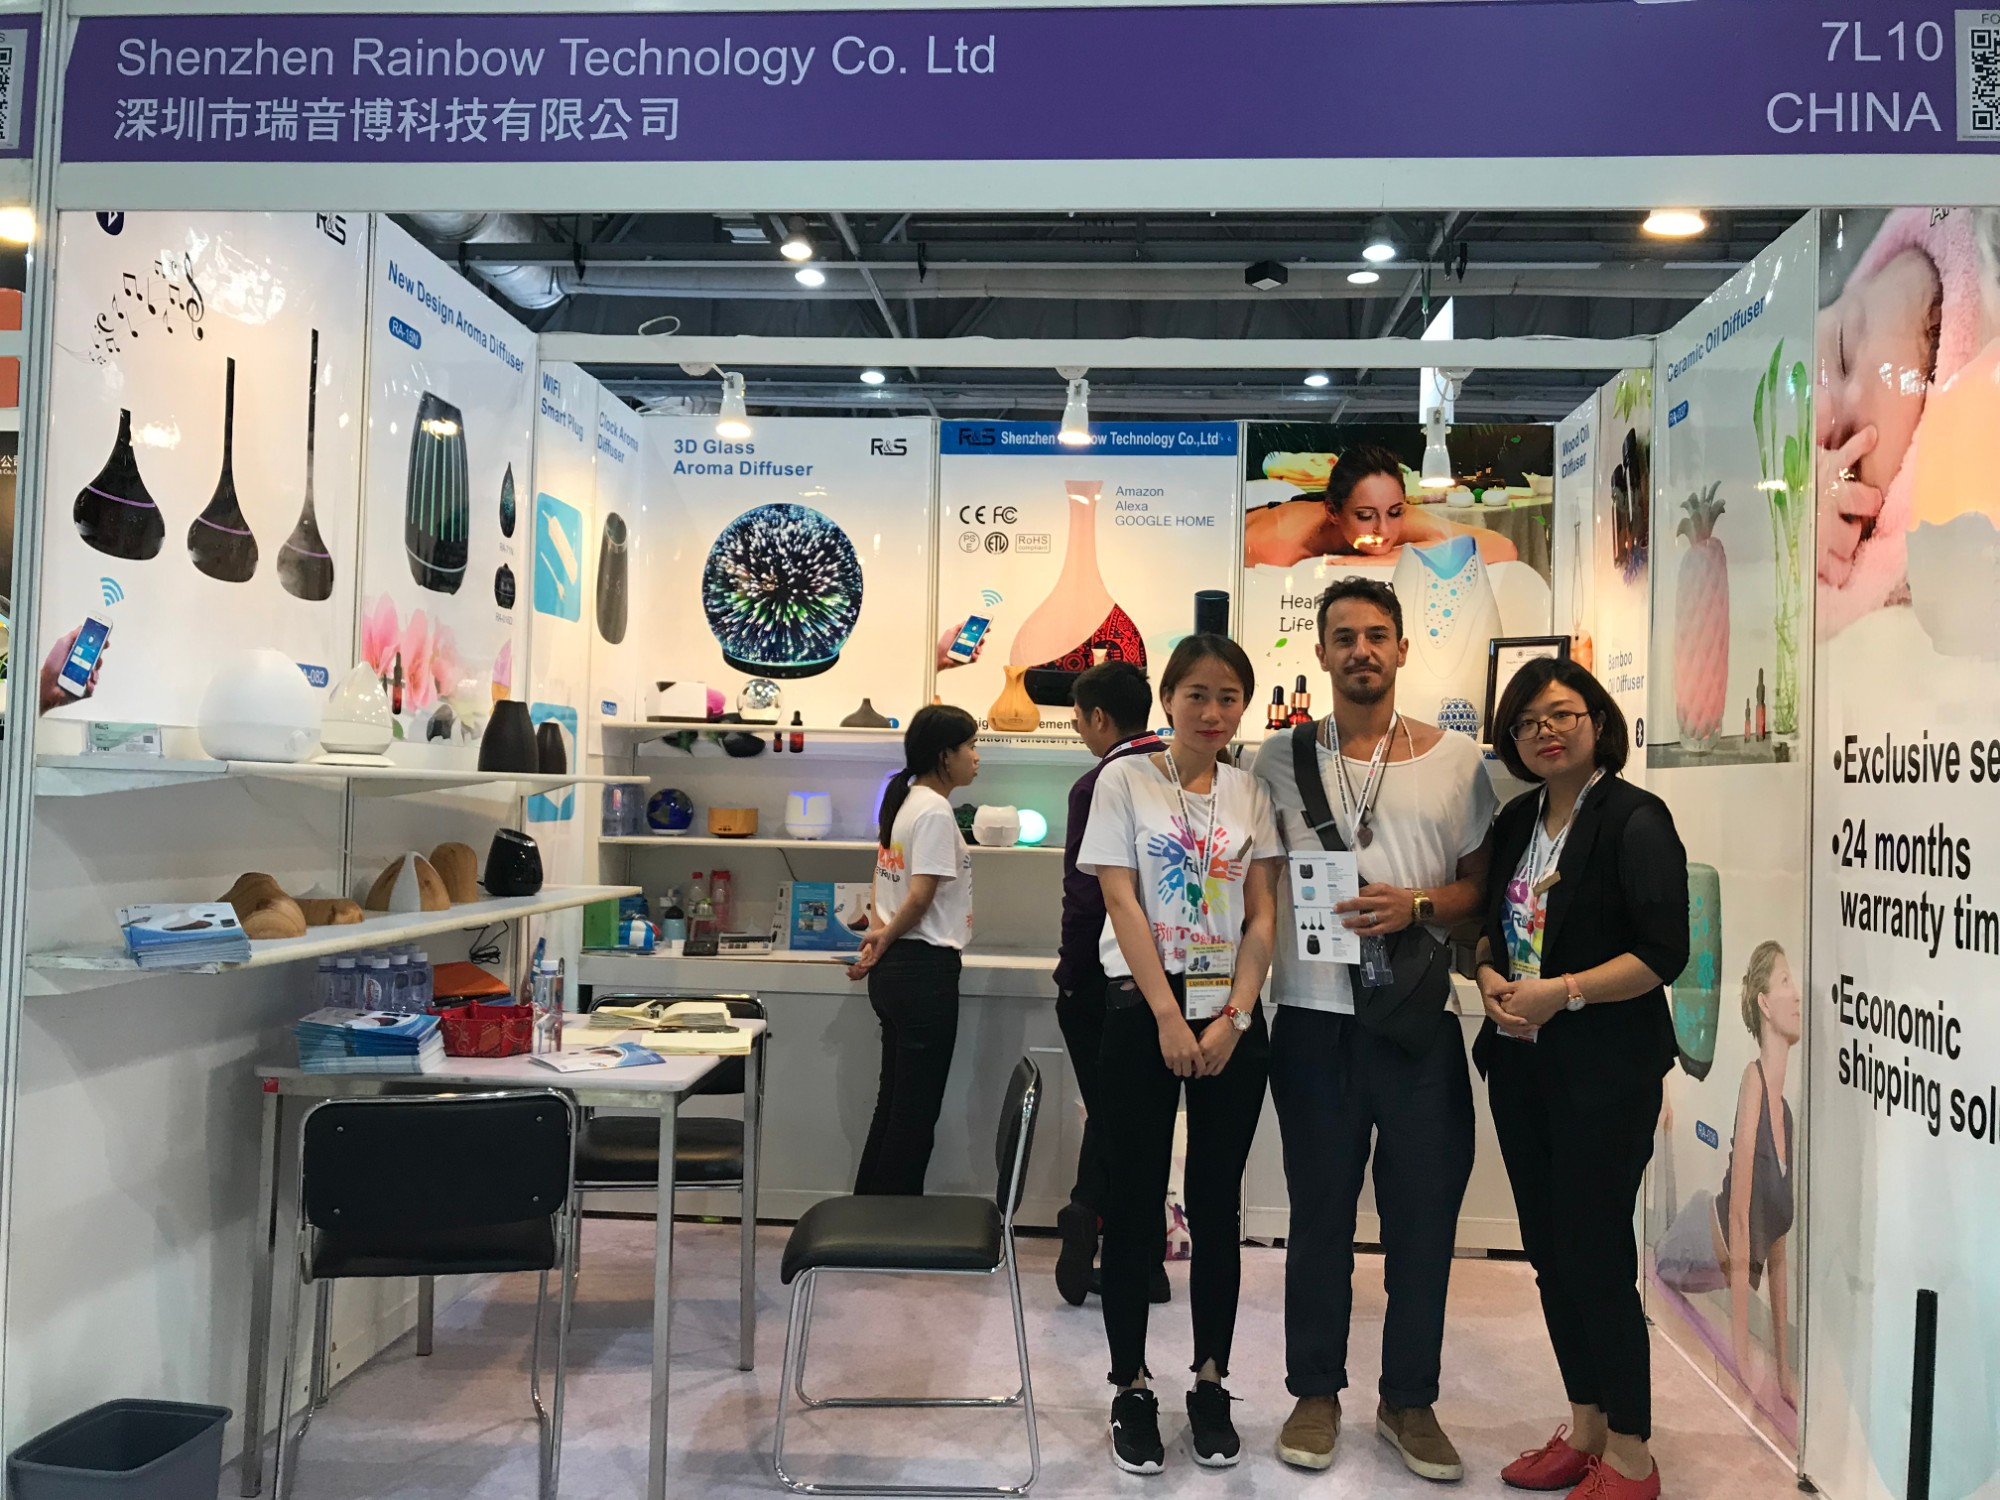 Globalsources Electronics, 2018 in HK (11. bis 14. April)